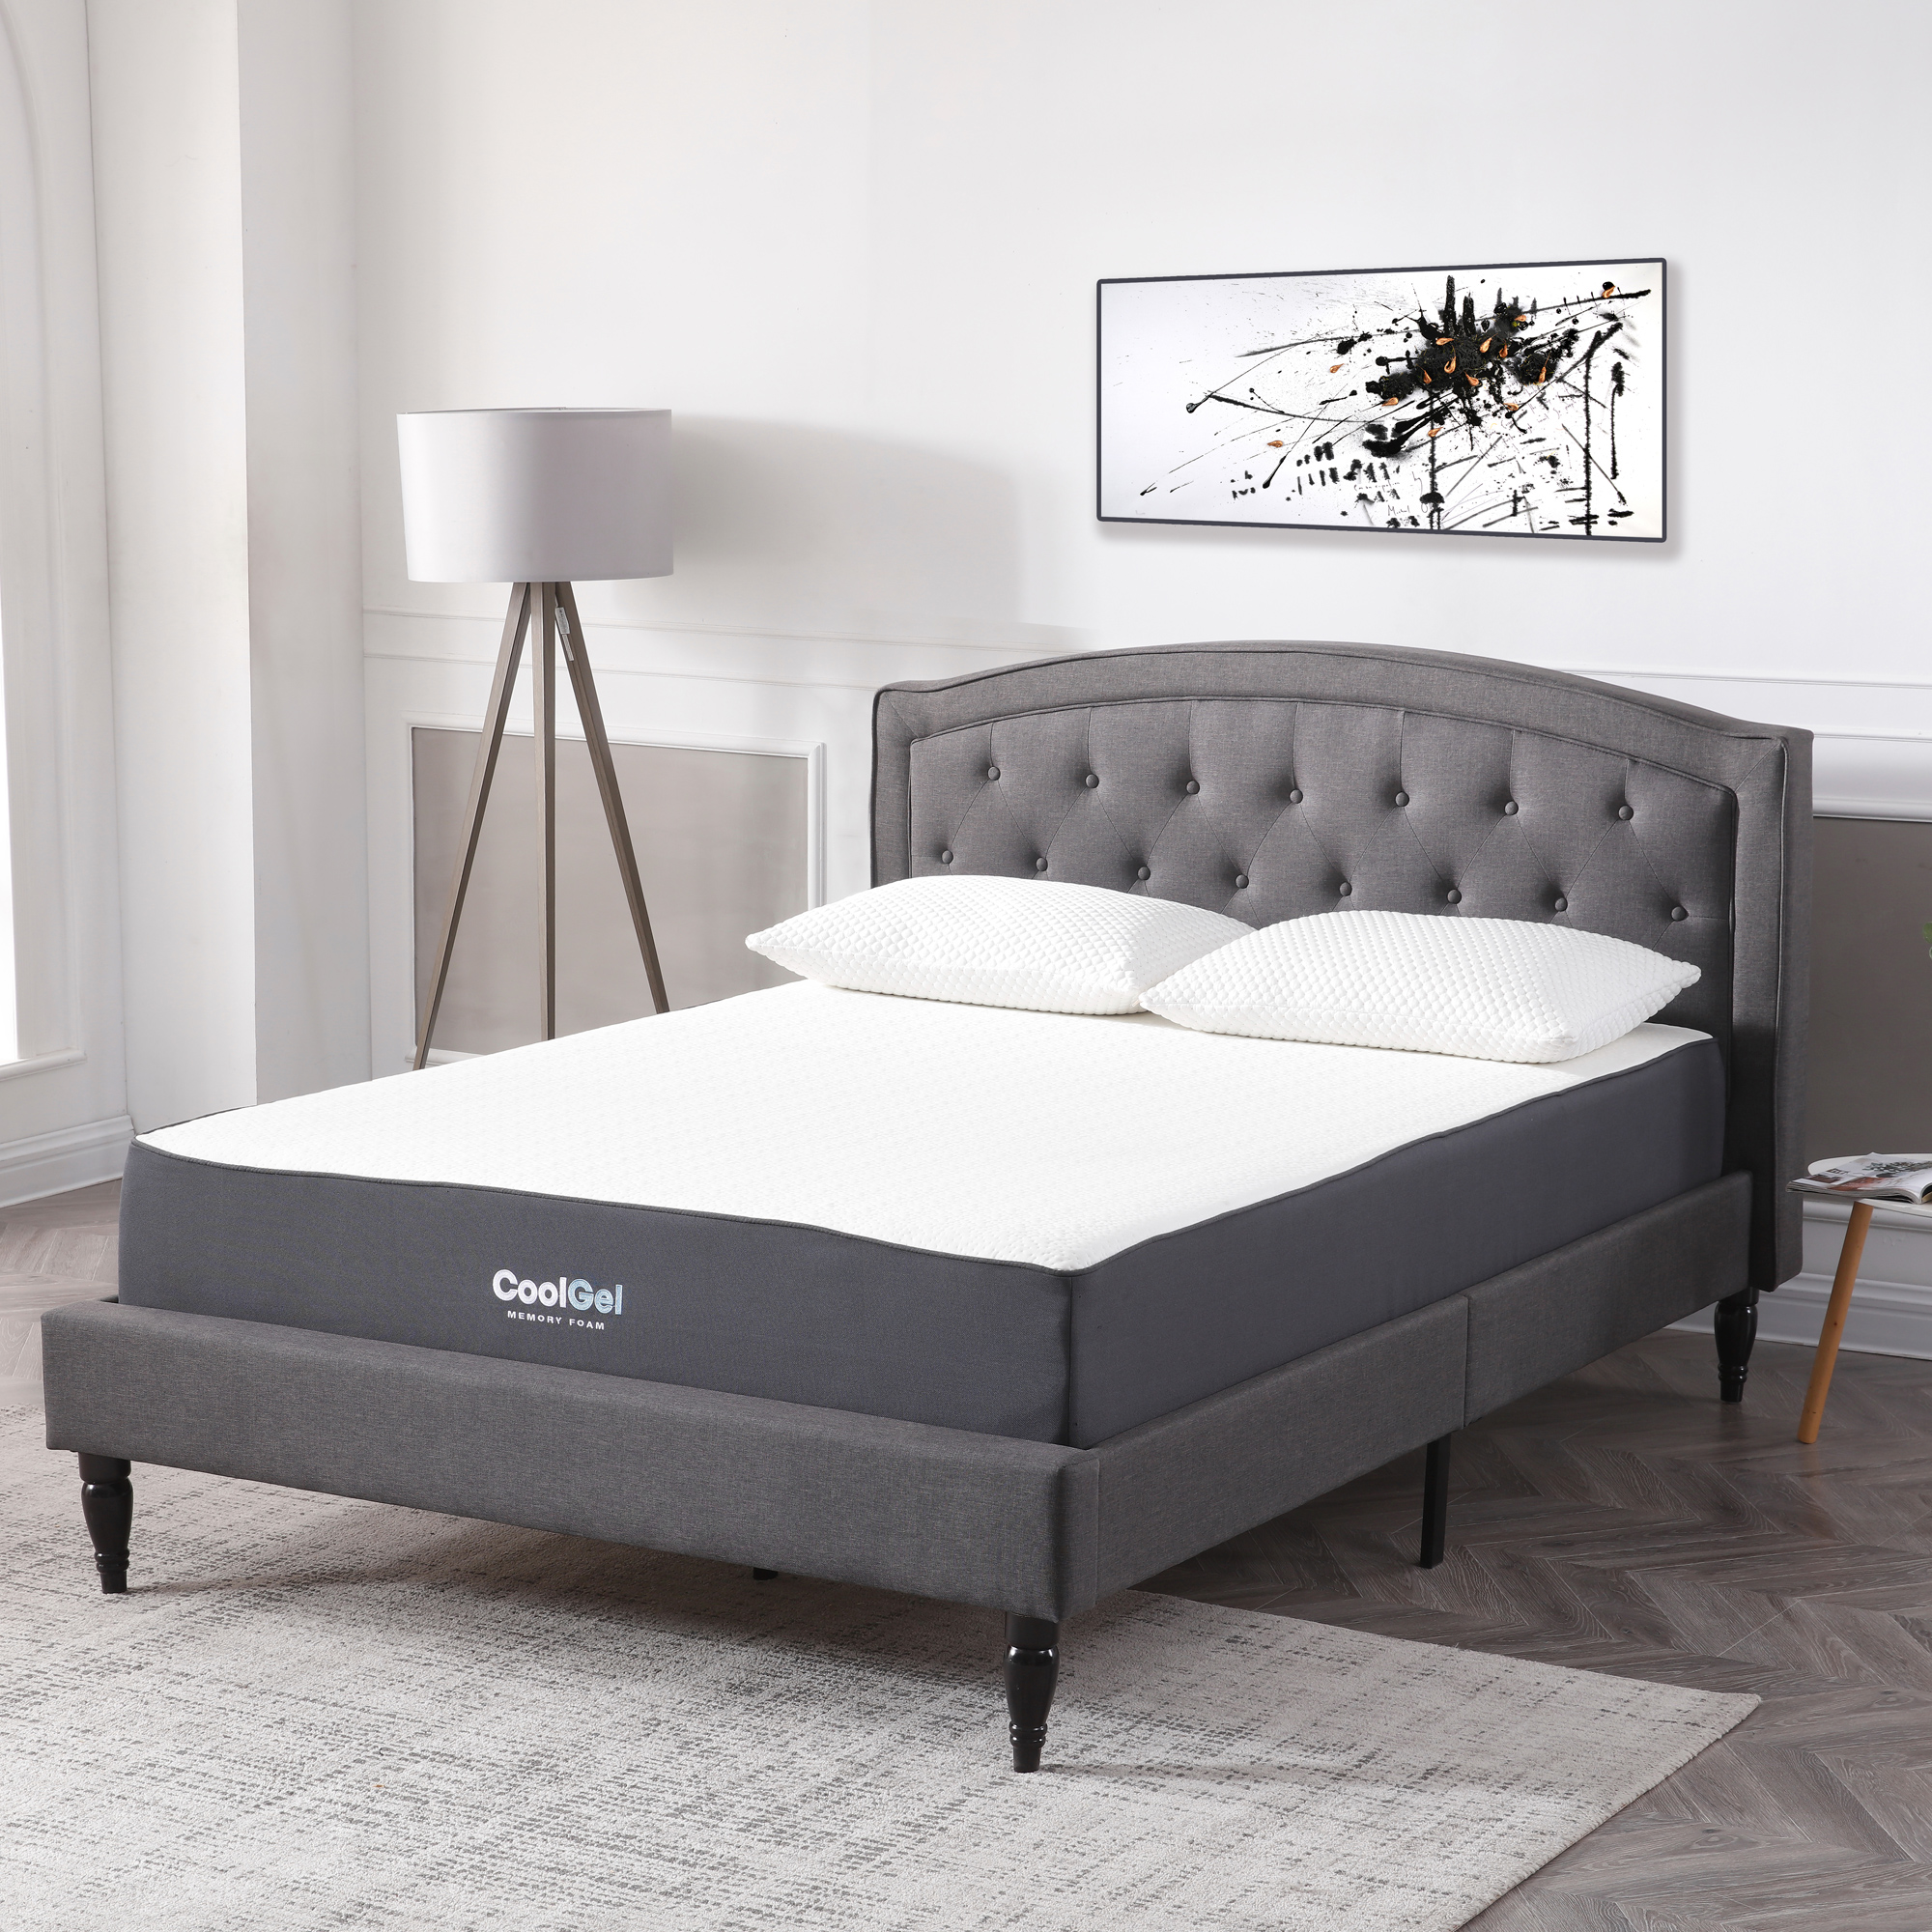 Modern Sleep Cool Gel Ventilated Gel Memory Foam 10.5-Inch Mattress, Multiple Sizes